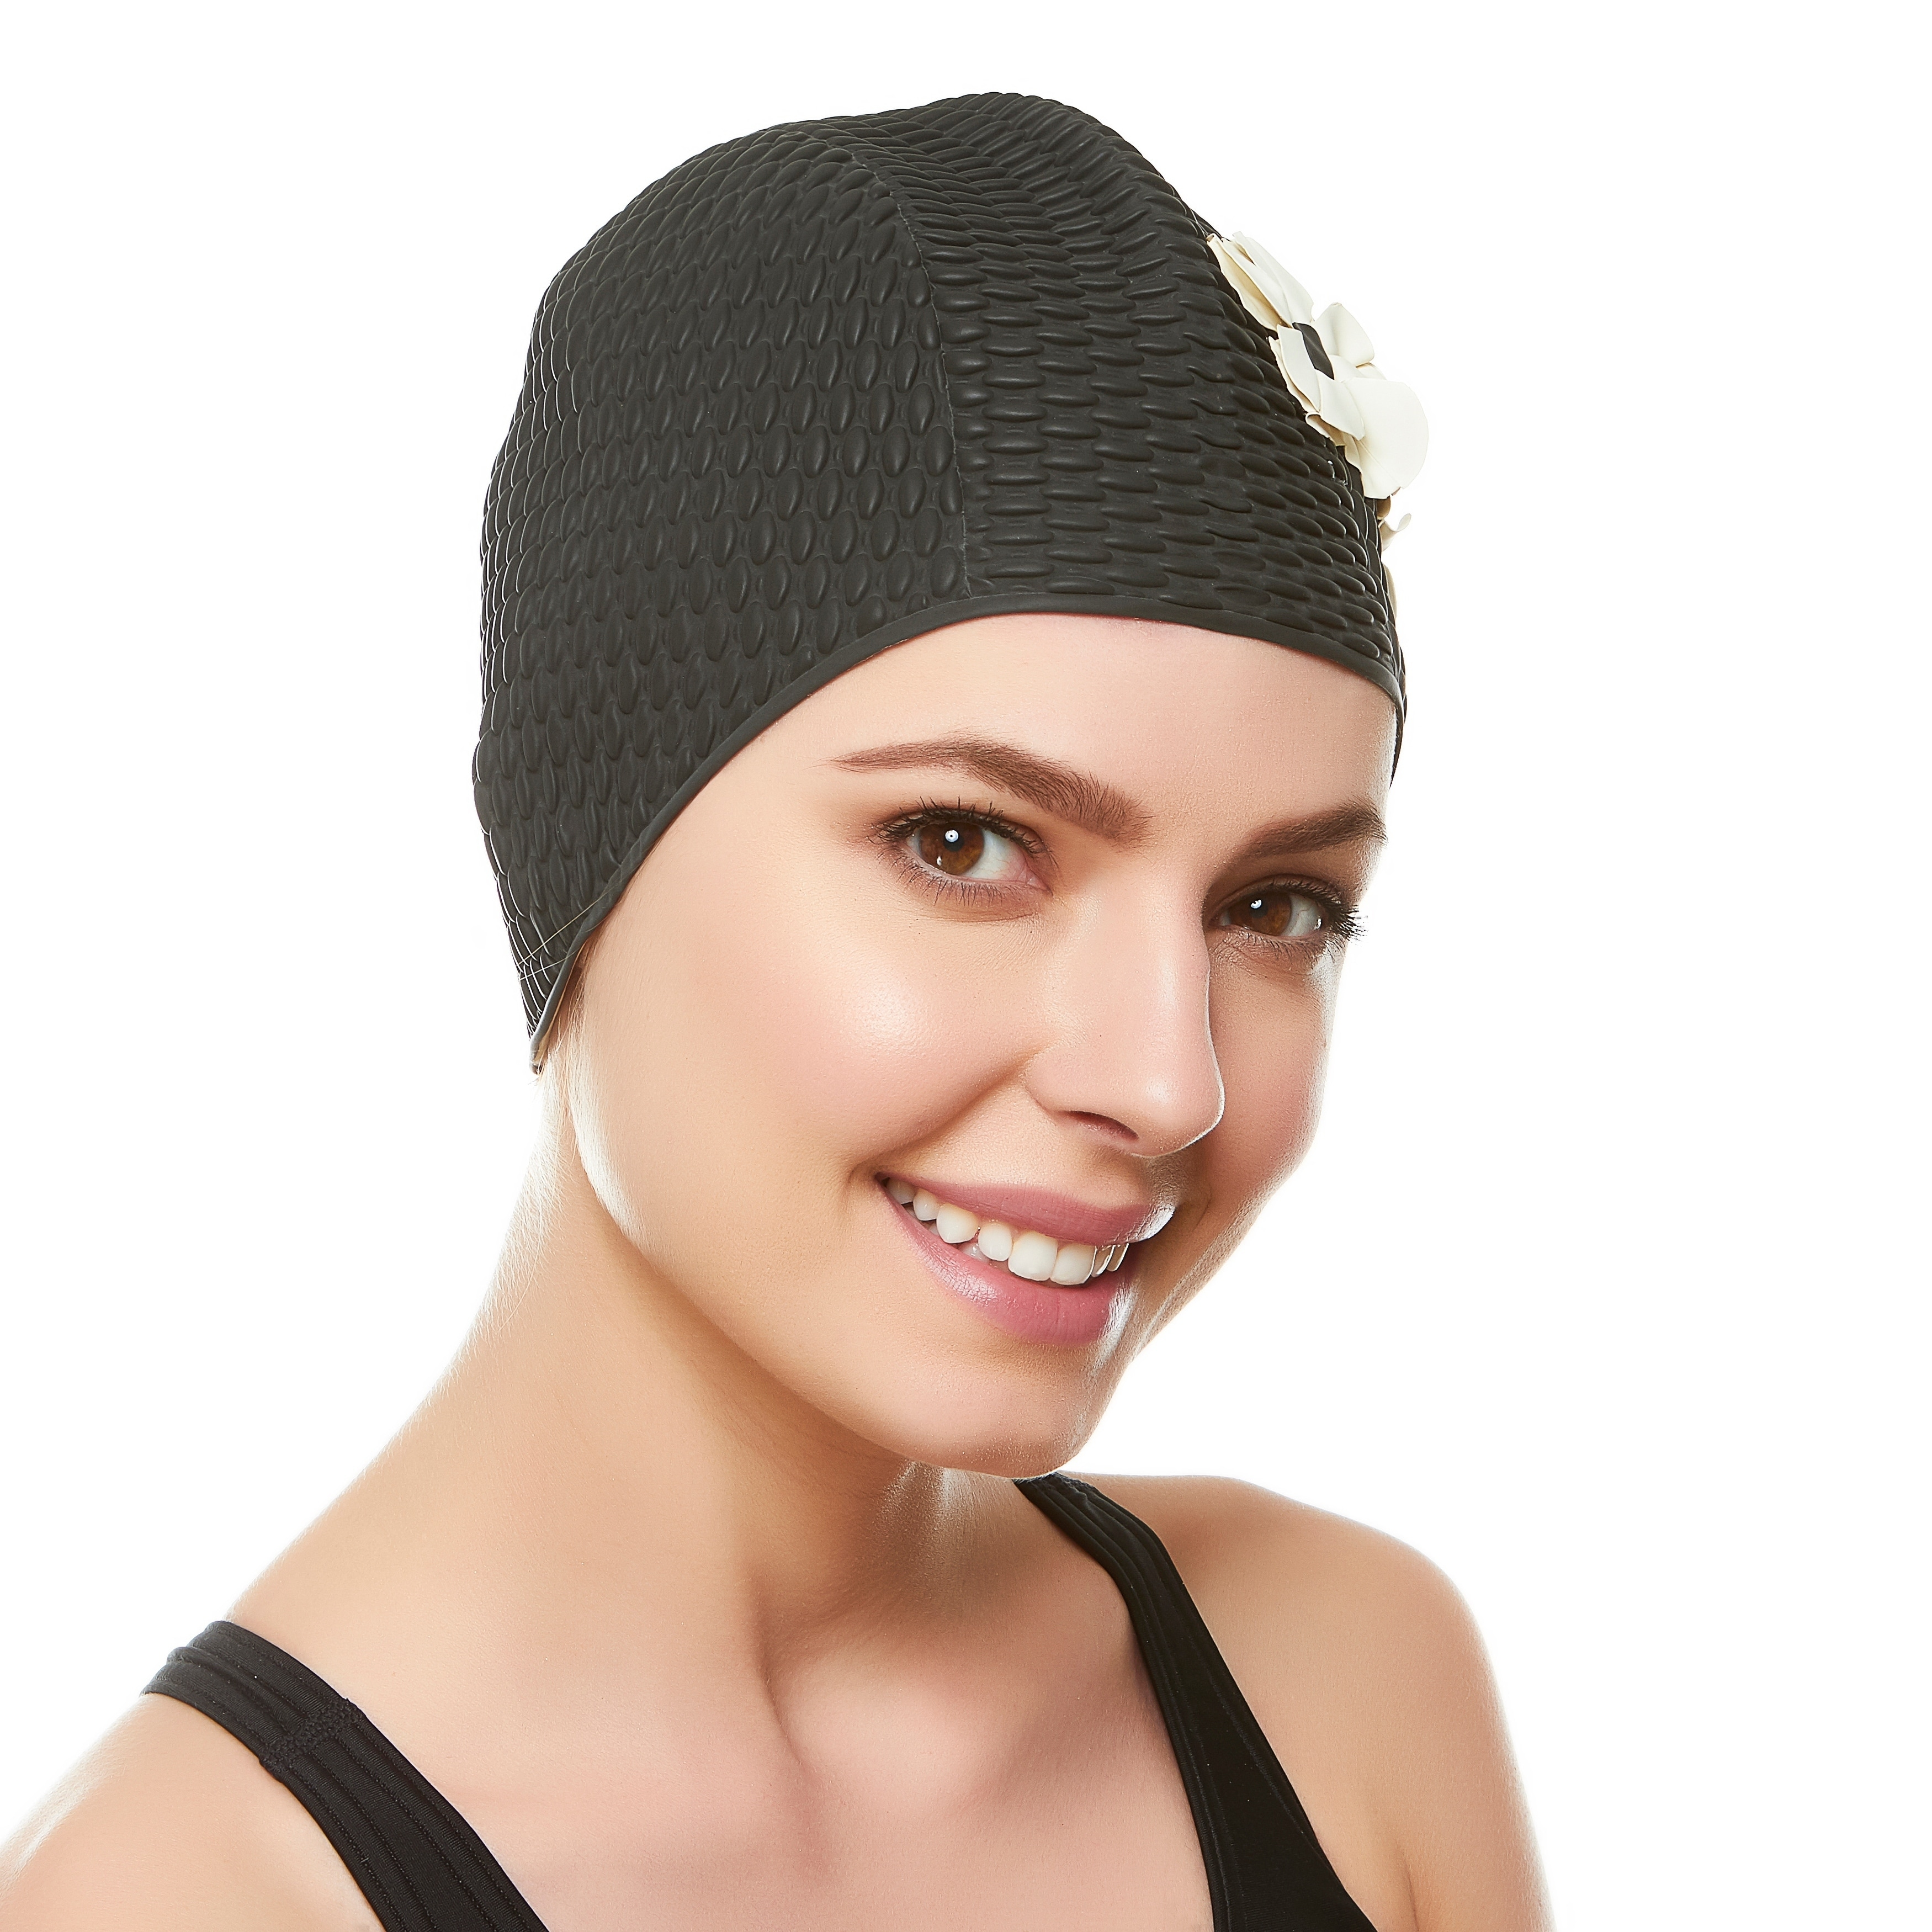 420753f29a0 Shop Beemo Ladies Swim Cap Latex Vintage Style Shower Bathing Waterproof  Headcovers - Free Shipping On Orders Over  45 - Overstock - 23119281